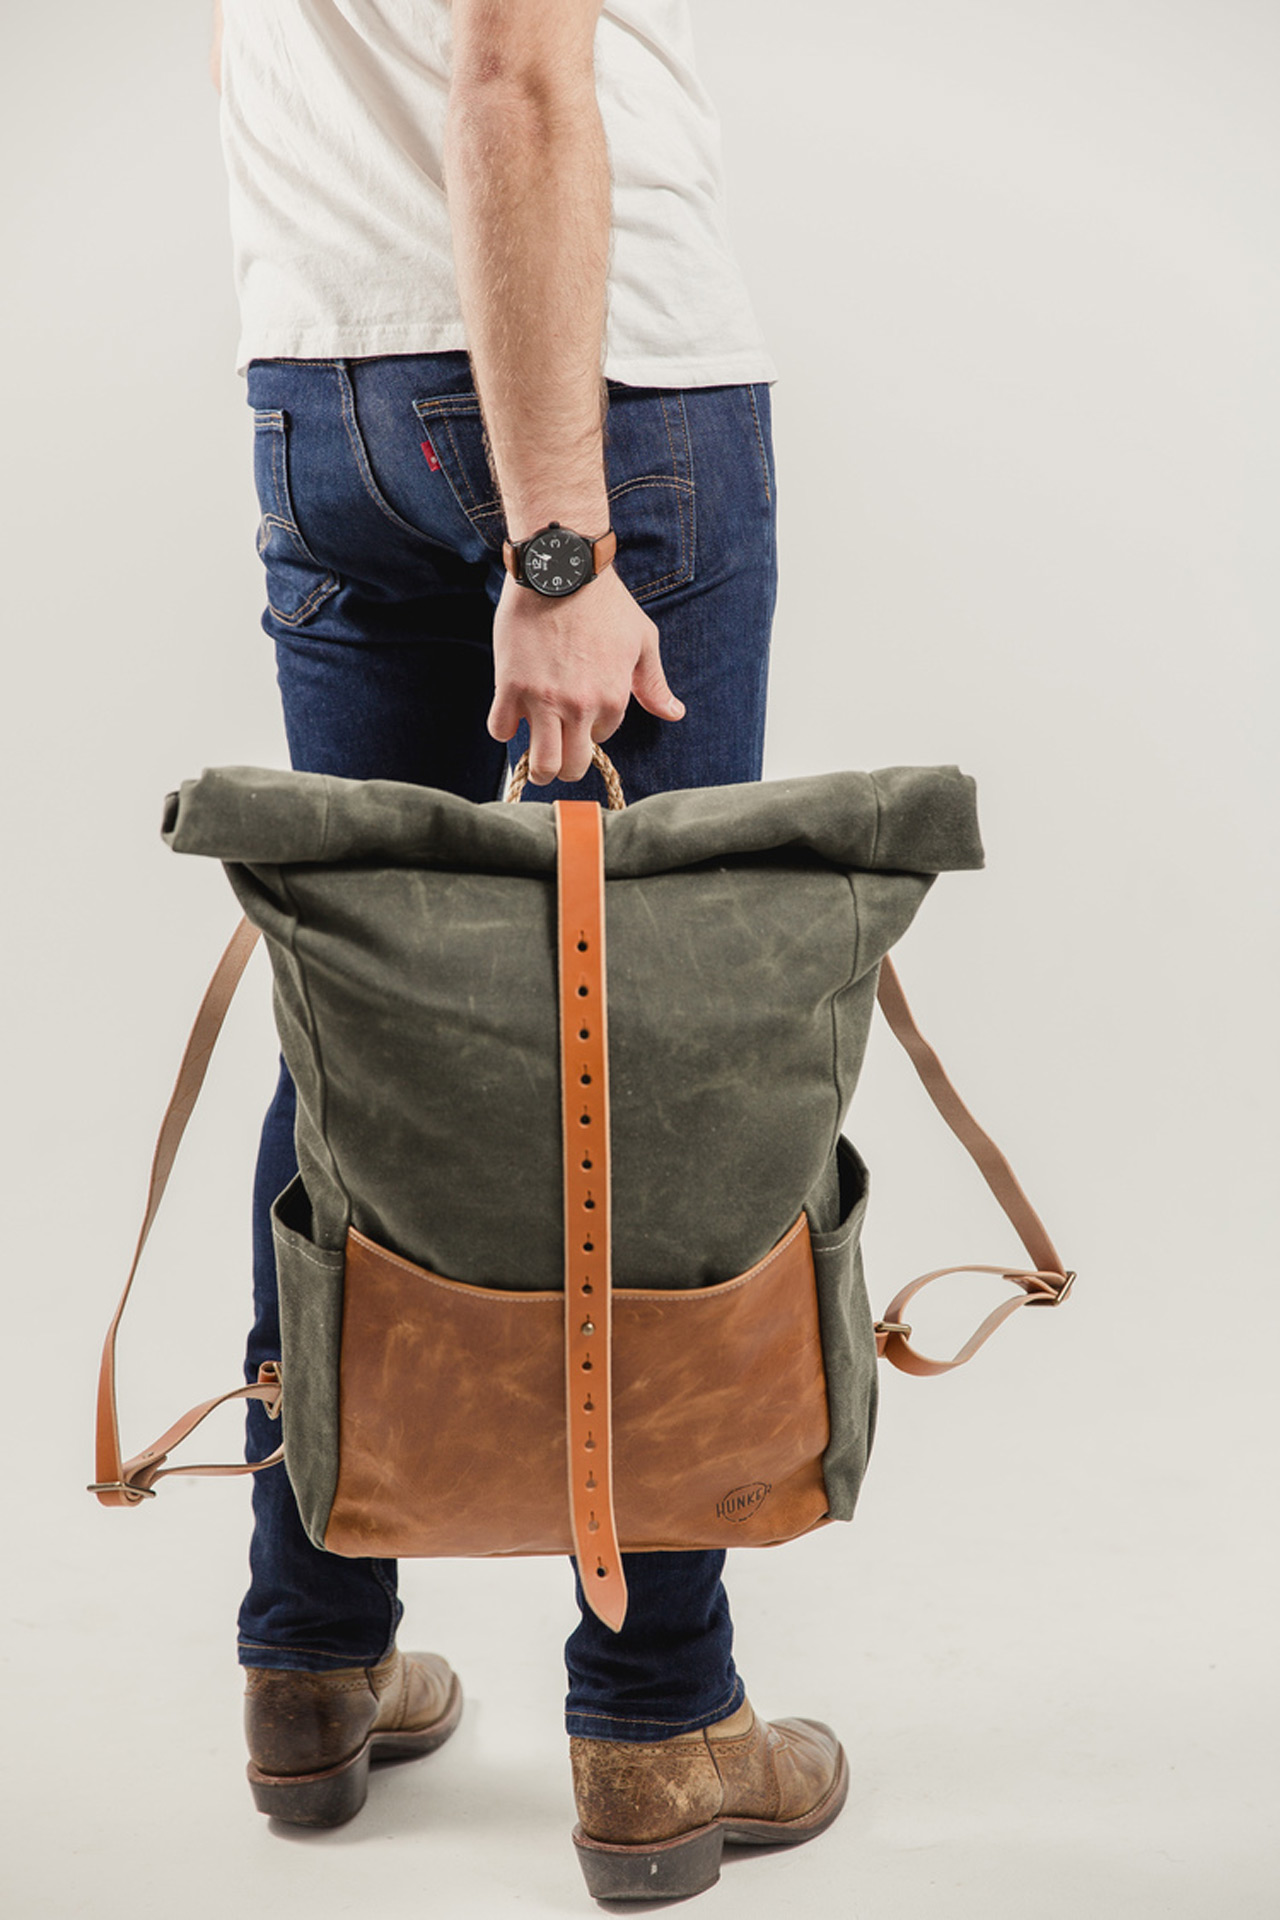 Hunker Bag Co Highwayman Rollto